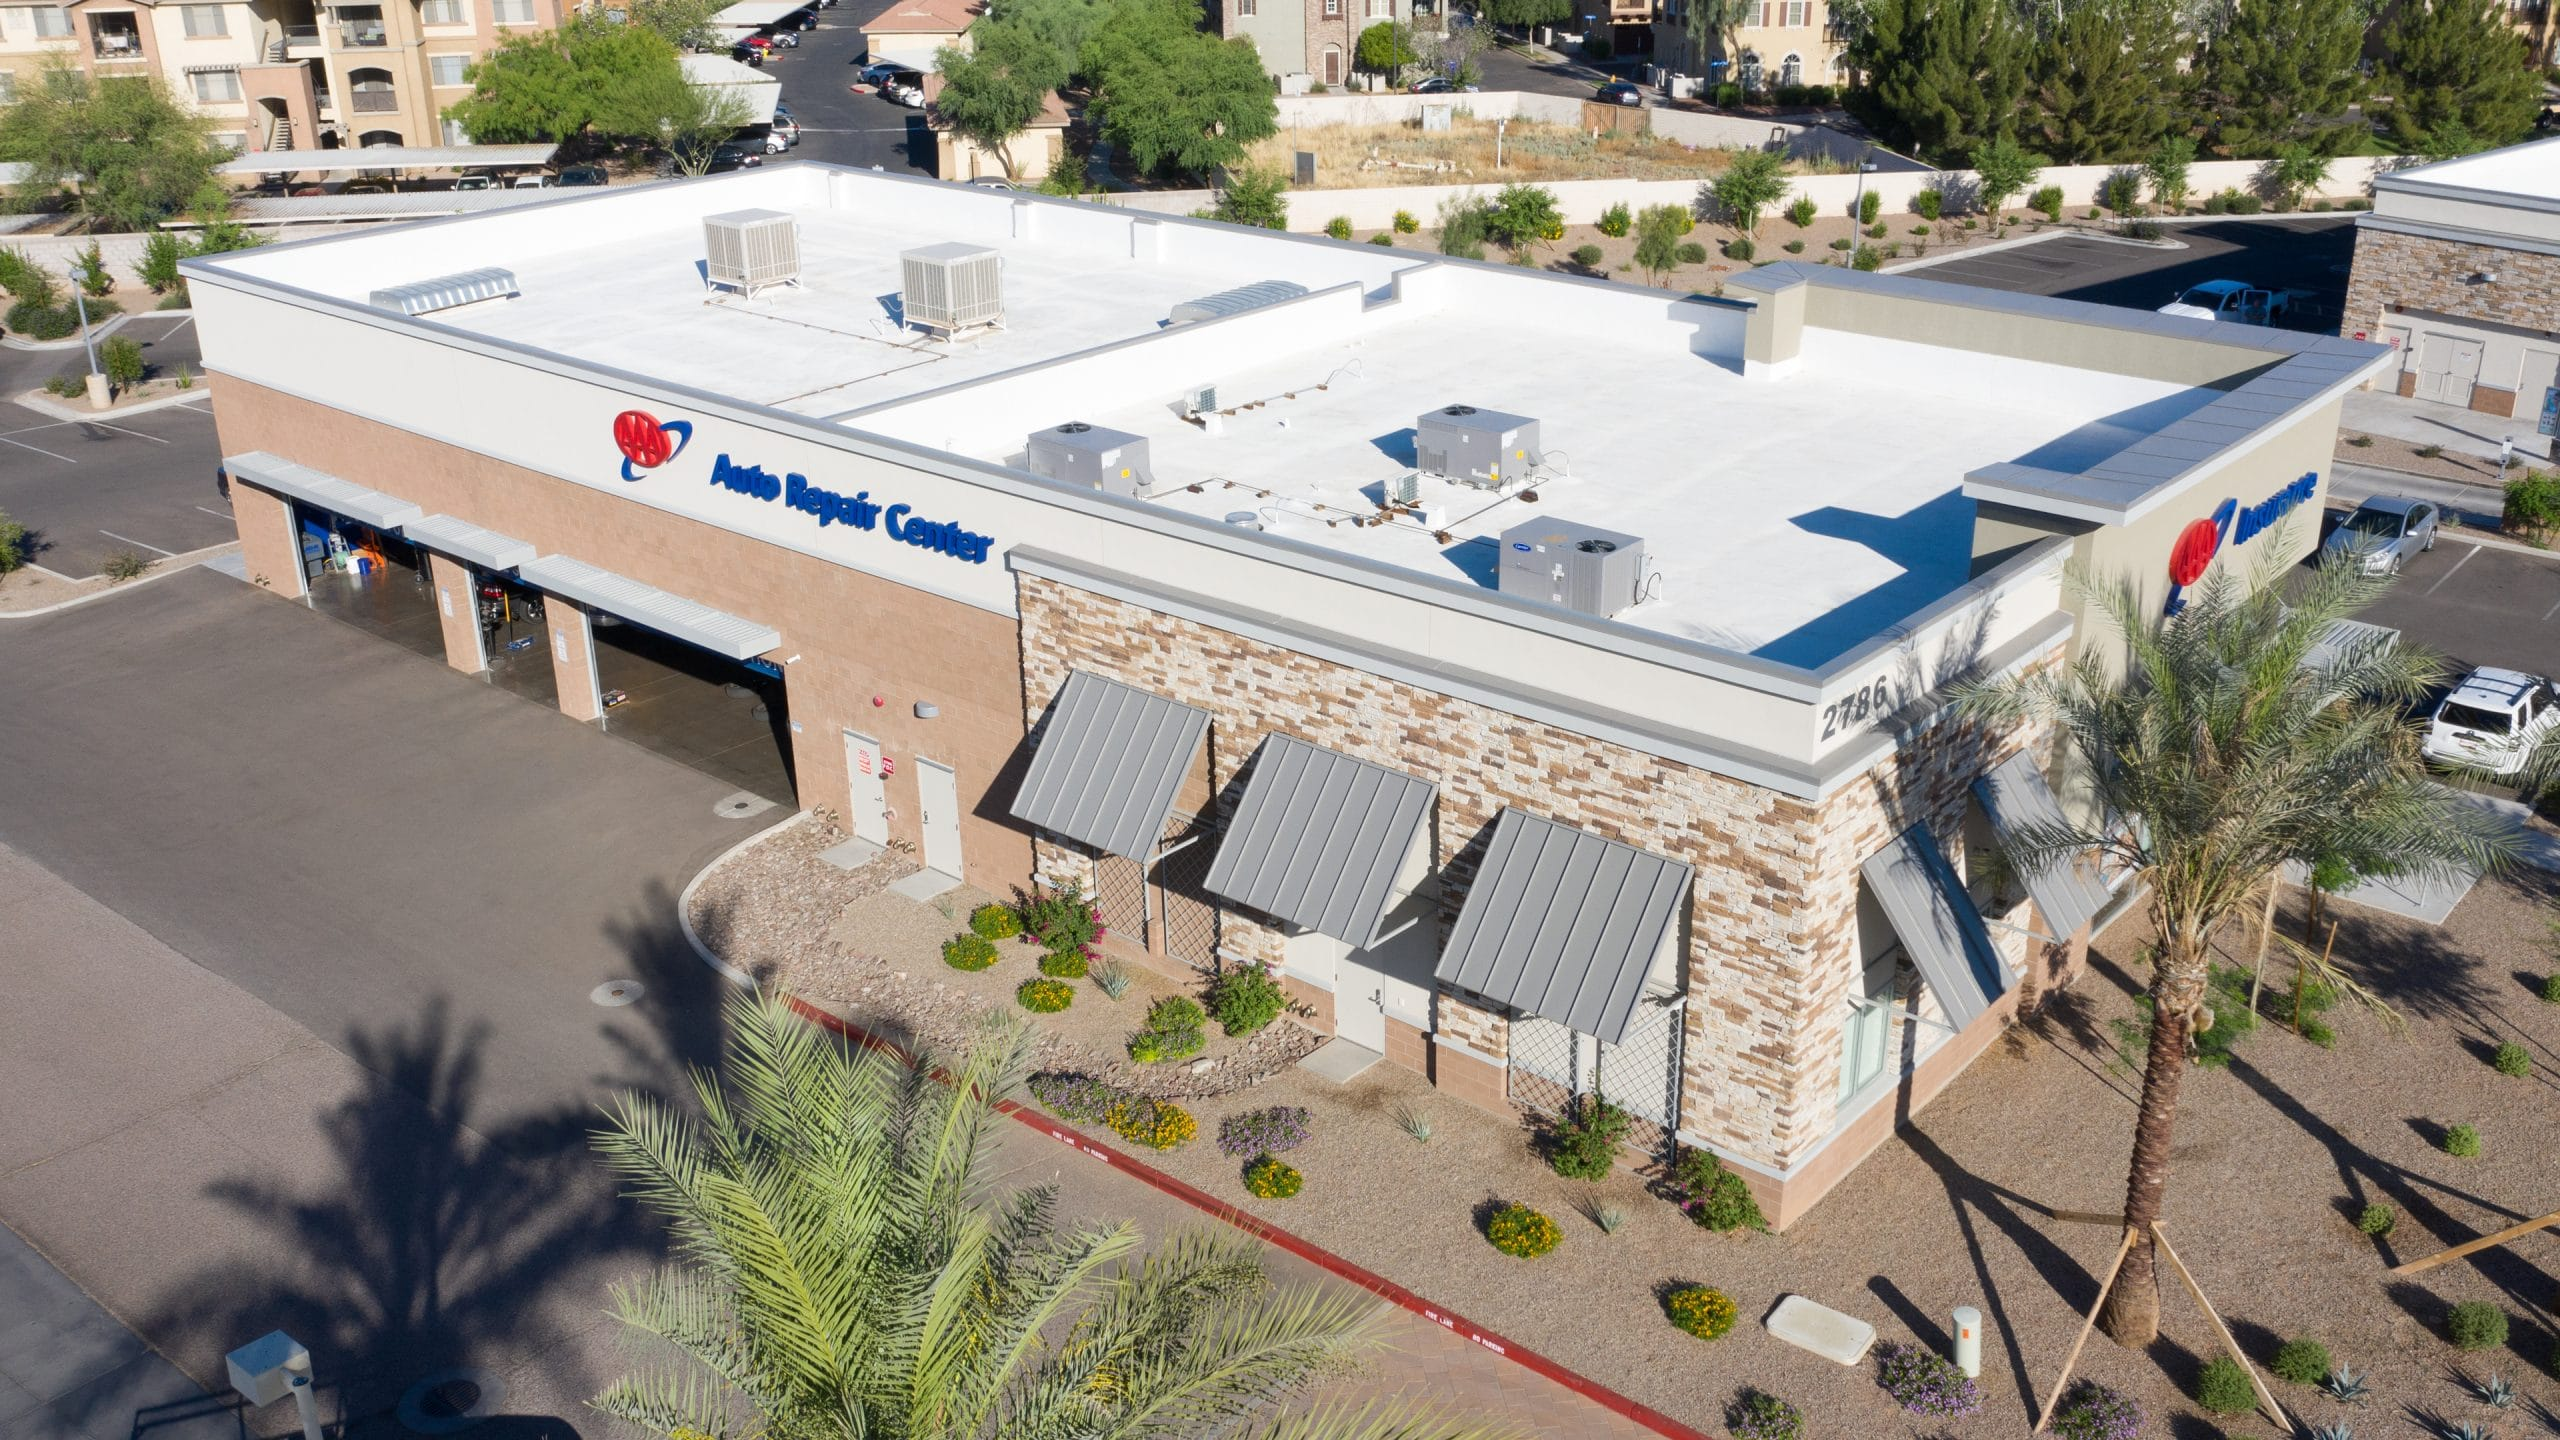 construction aaa auto center gilbert arizona